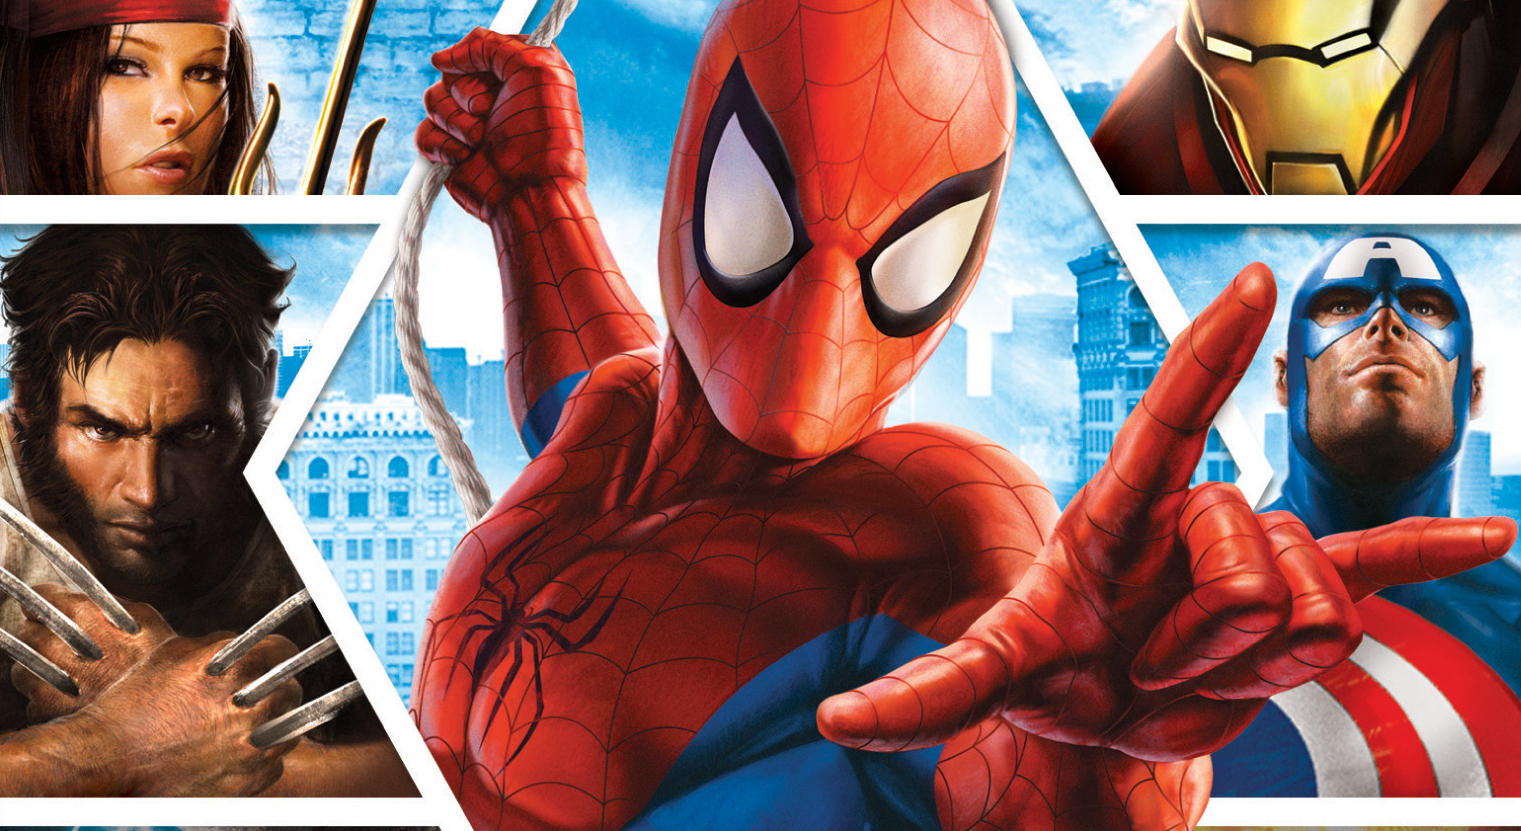 Both Marvel Ultimate Alliance Games Have Been Deleted from Digital